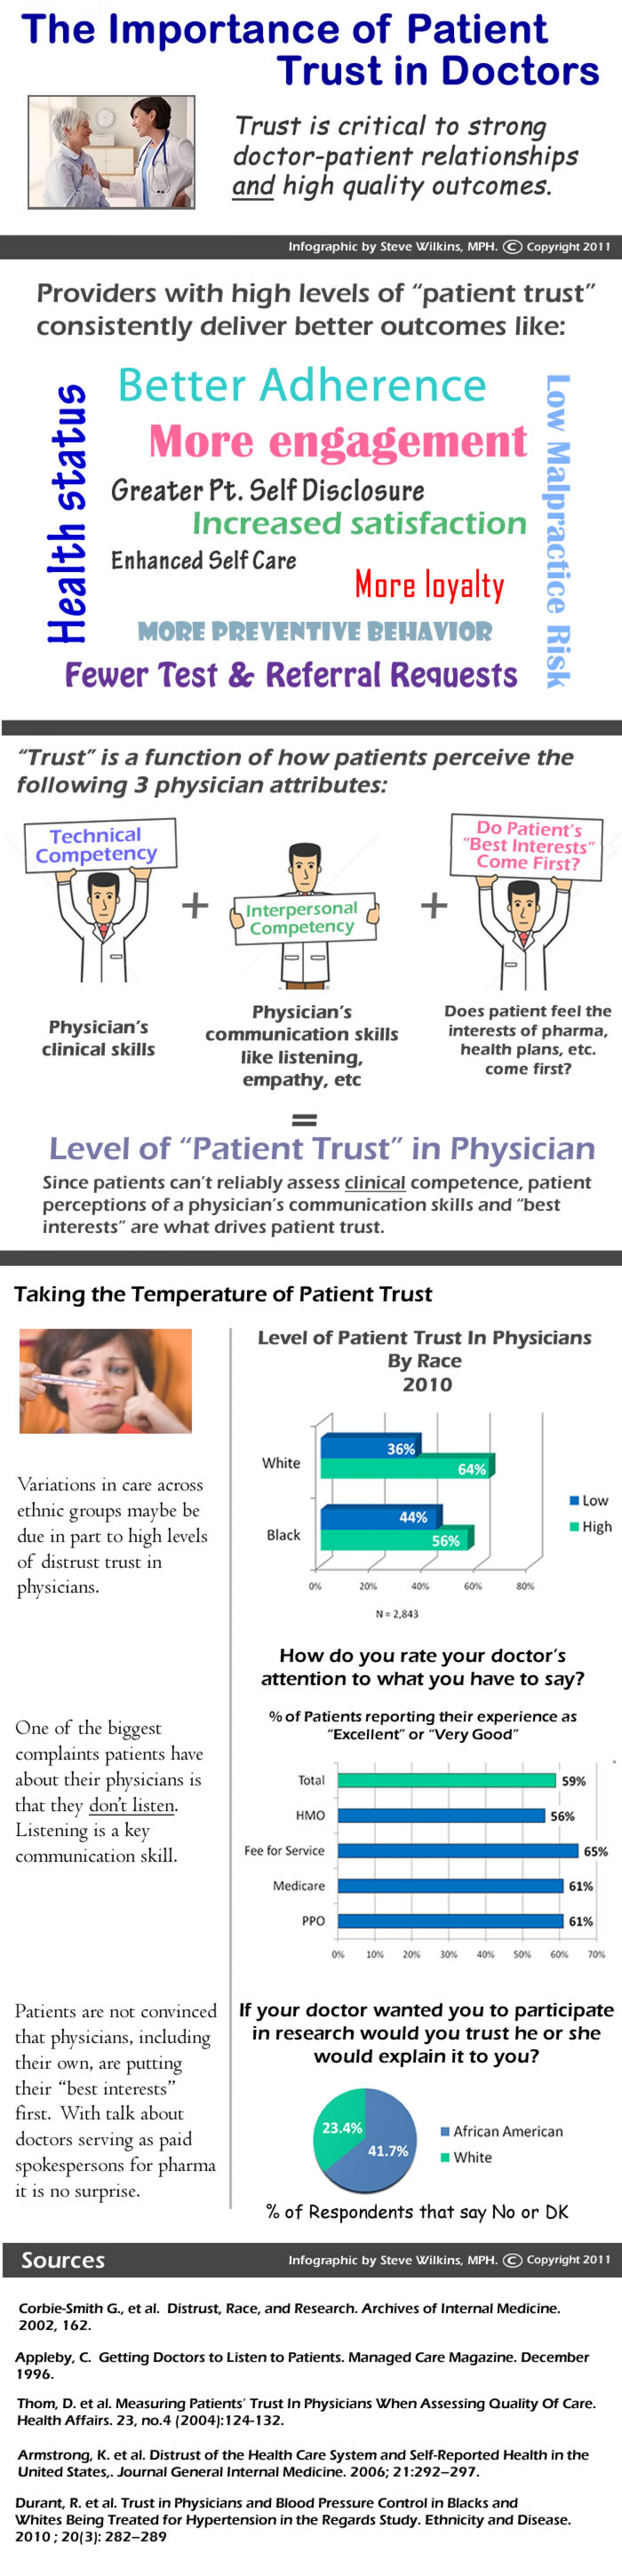 The Importance of Patient Trust in Doctors Infographic